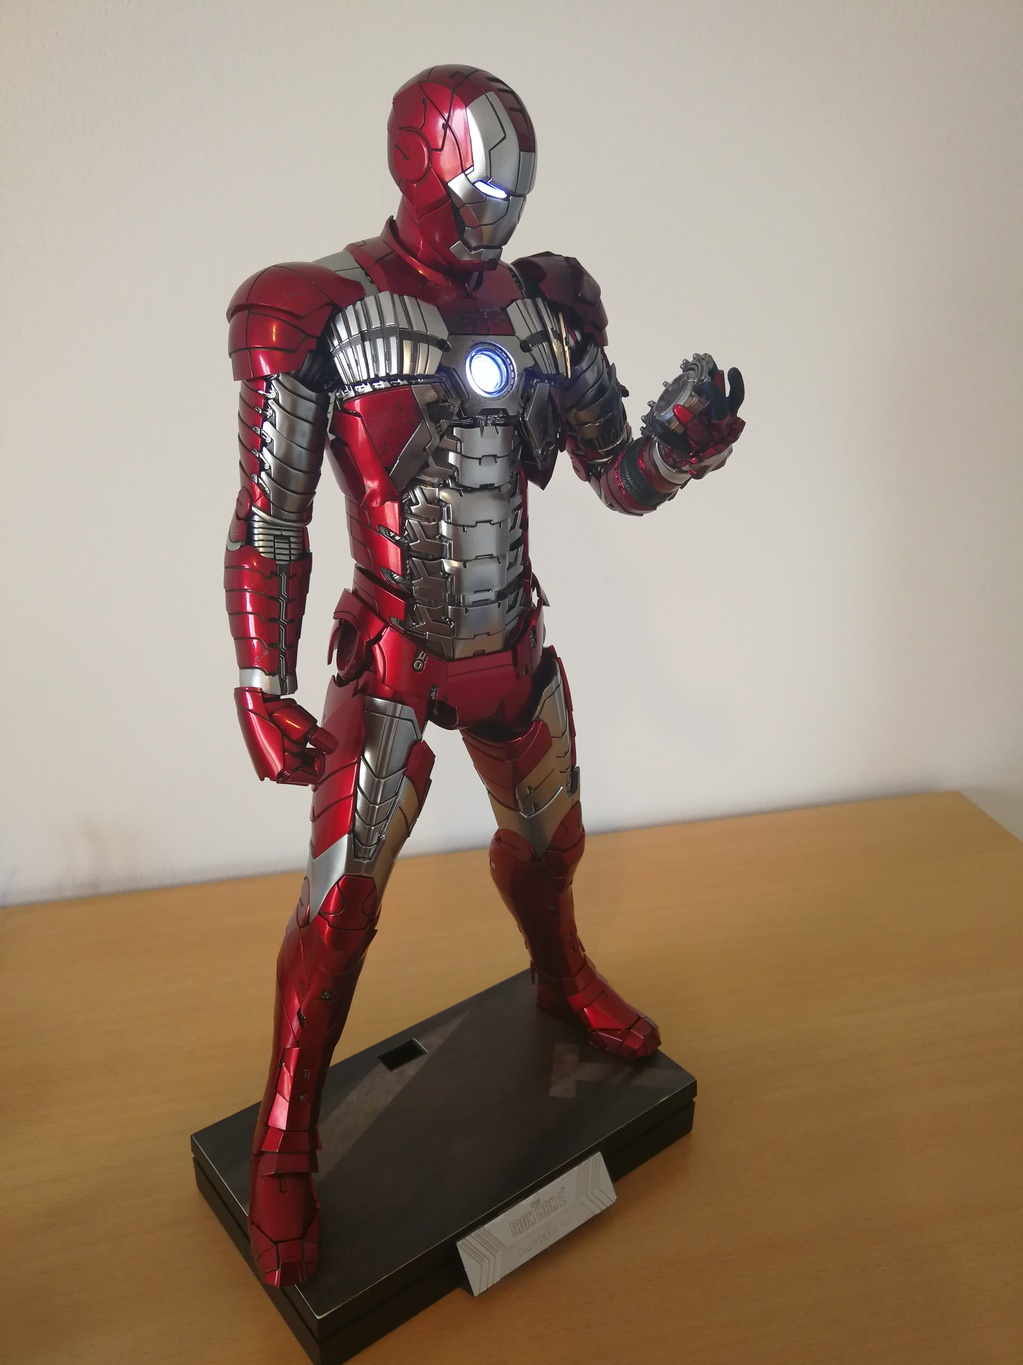 red360 : Spiderman Homecoming Deluxe version Hot Toys - Page 27 180506062025424692